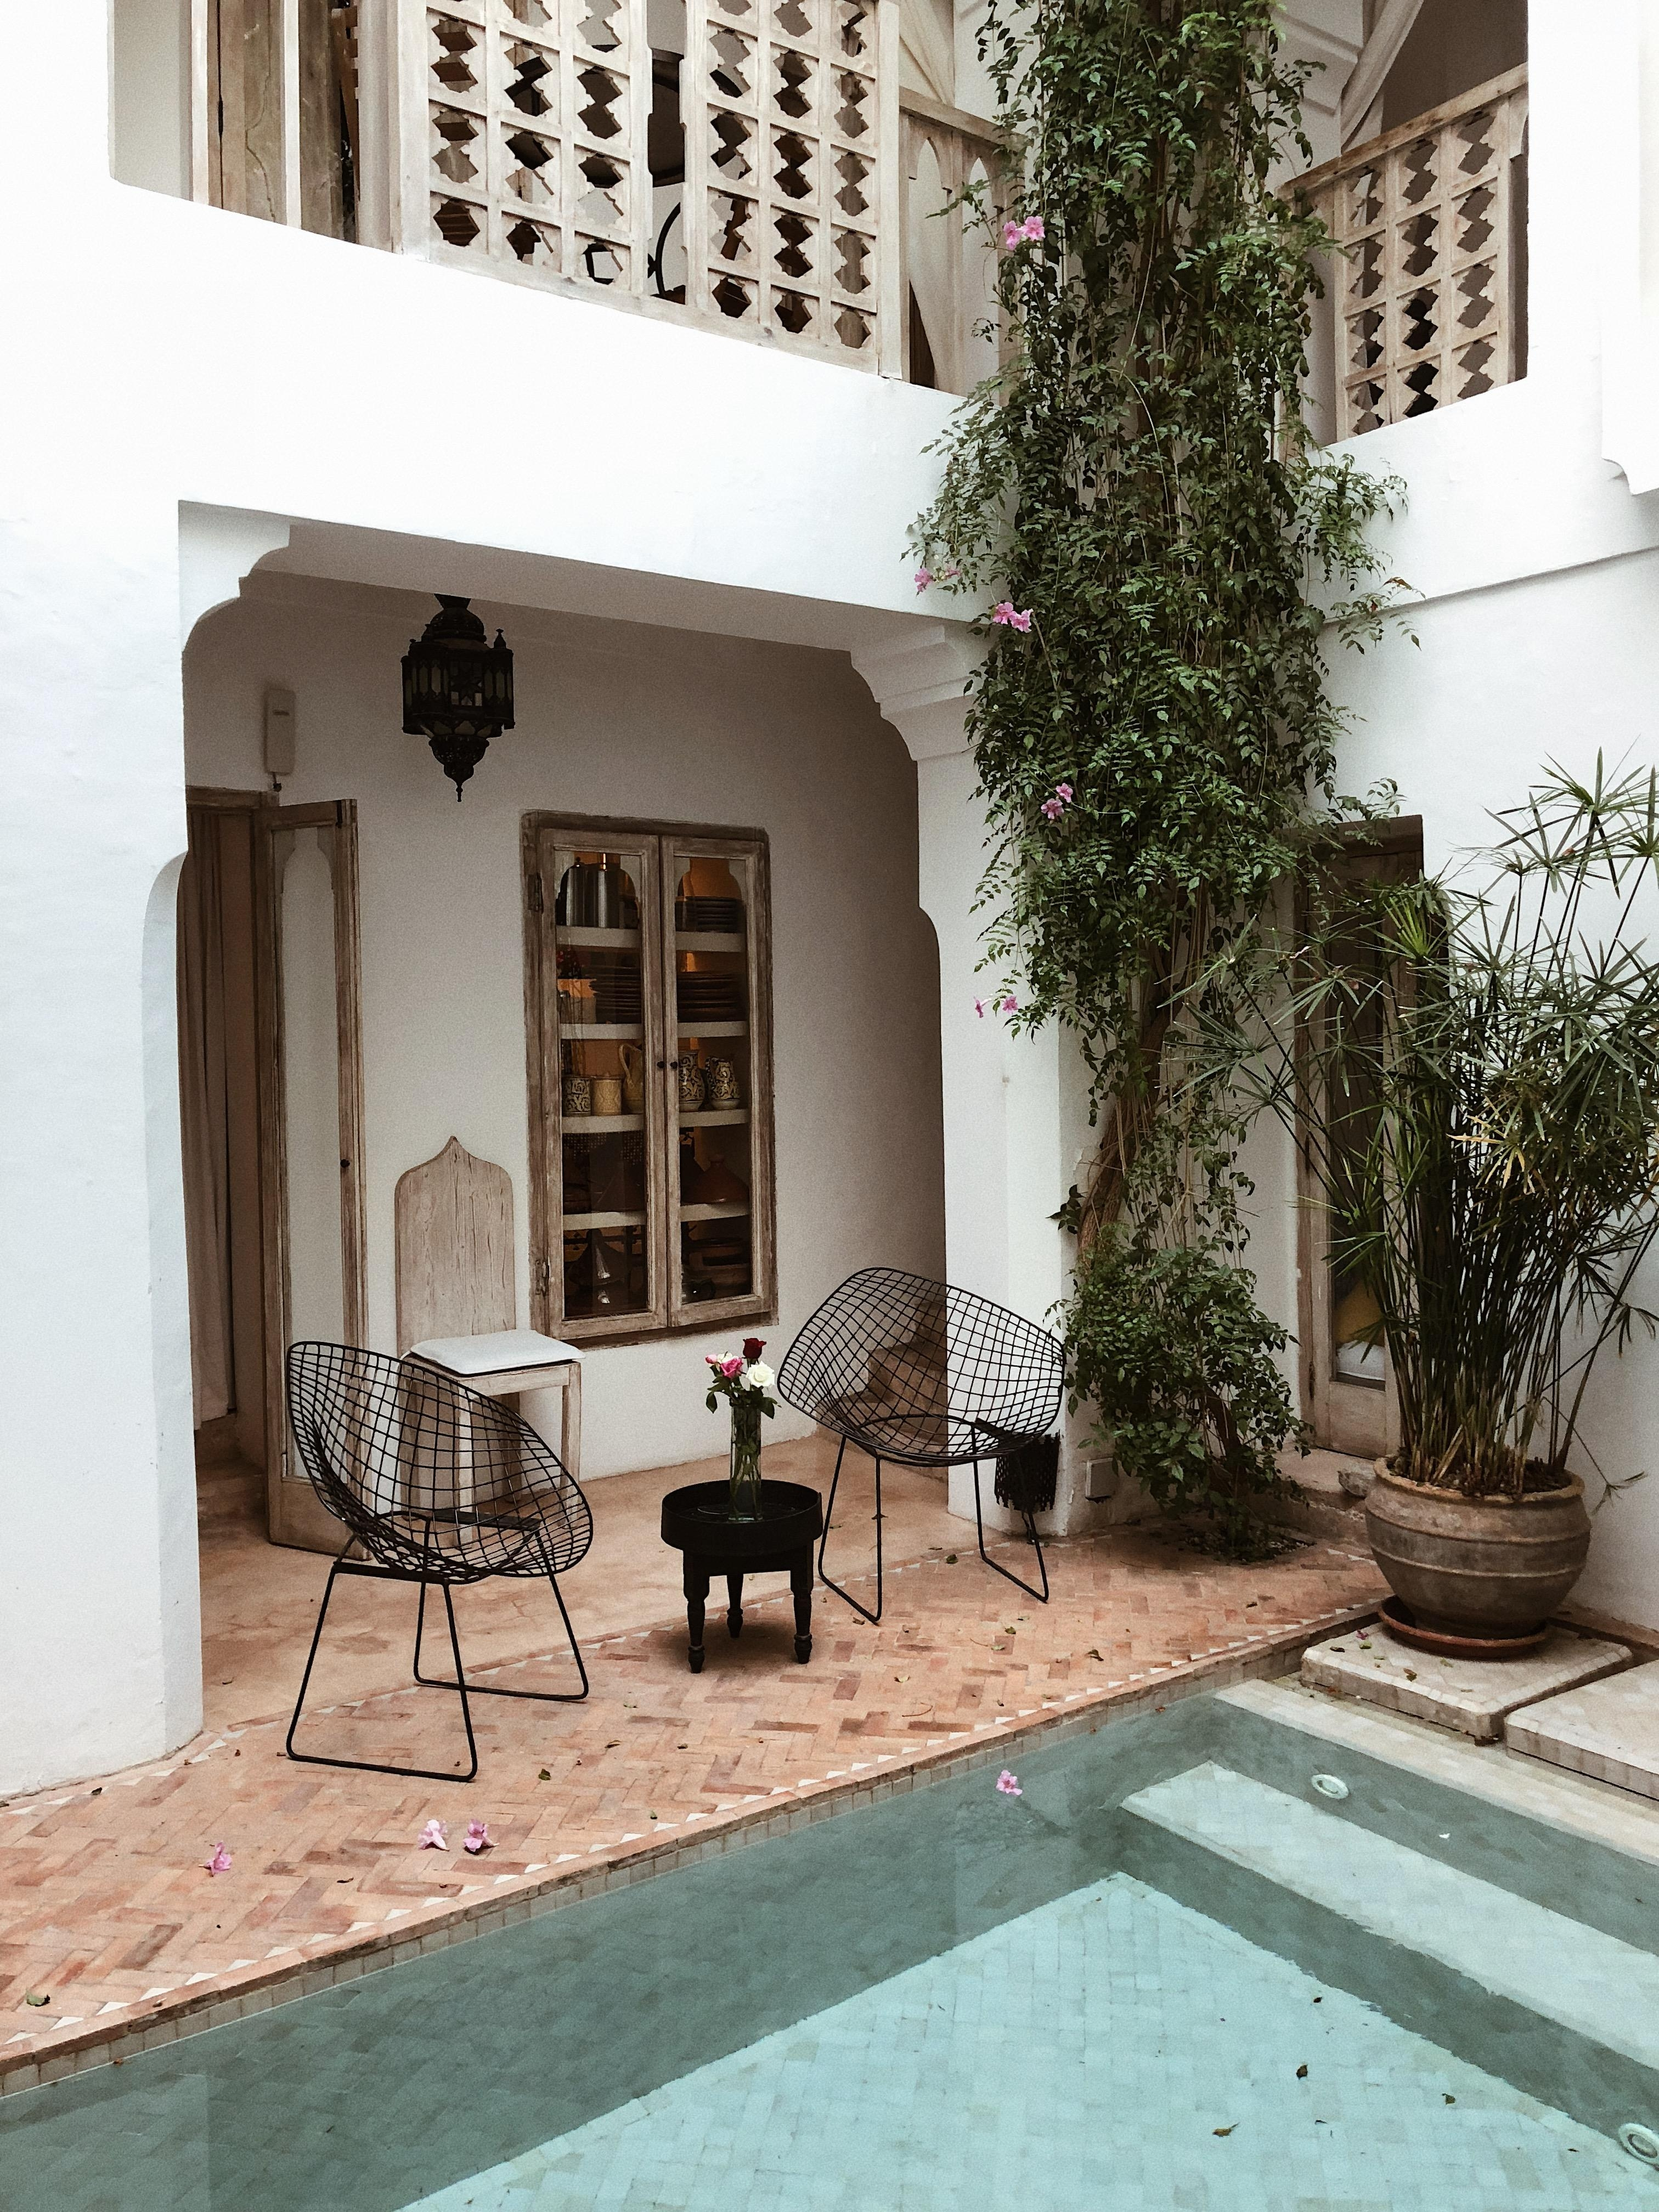 #marrakech #riad #dream #harrybetoia